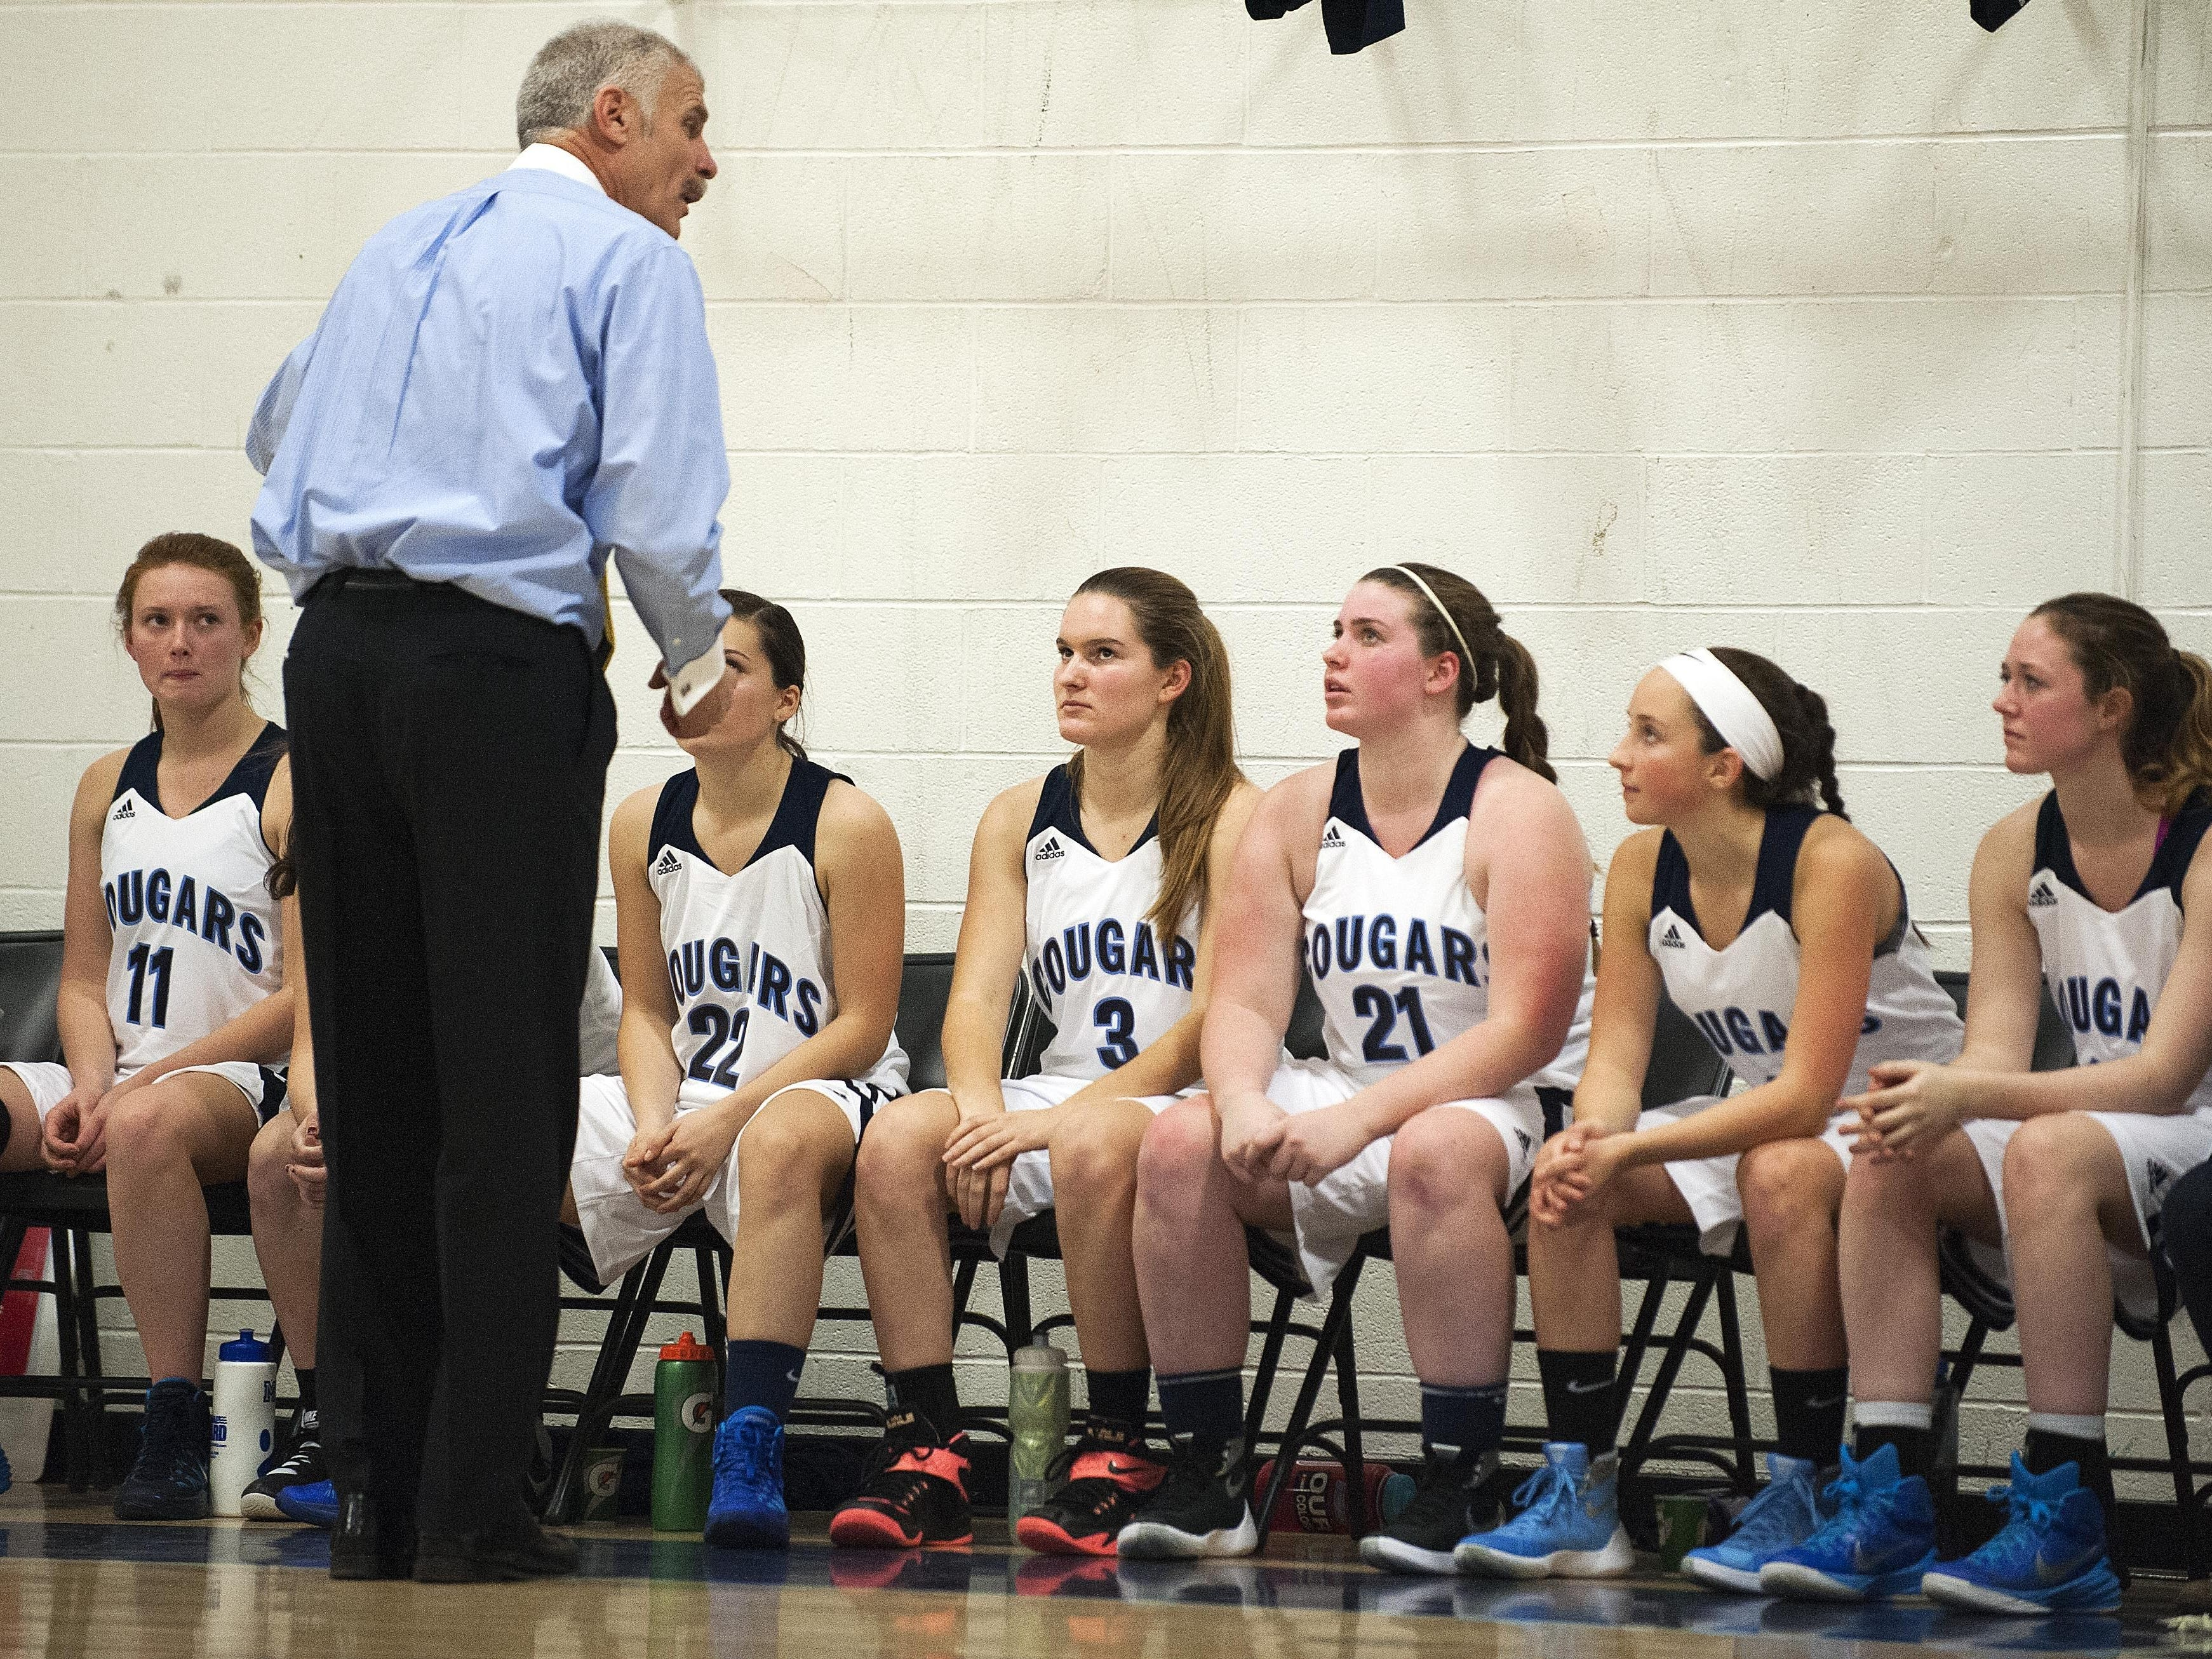 Mount Mansfield head coach Marty Derda talks to the his team on the bench during the girls basketball game between the Rice Green knights and the Mount Mansfield Cougars at MMU High School on Friday night December 4, 2015 in Jericho.